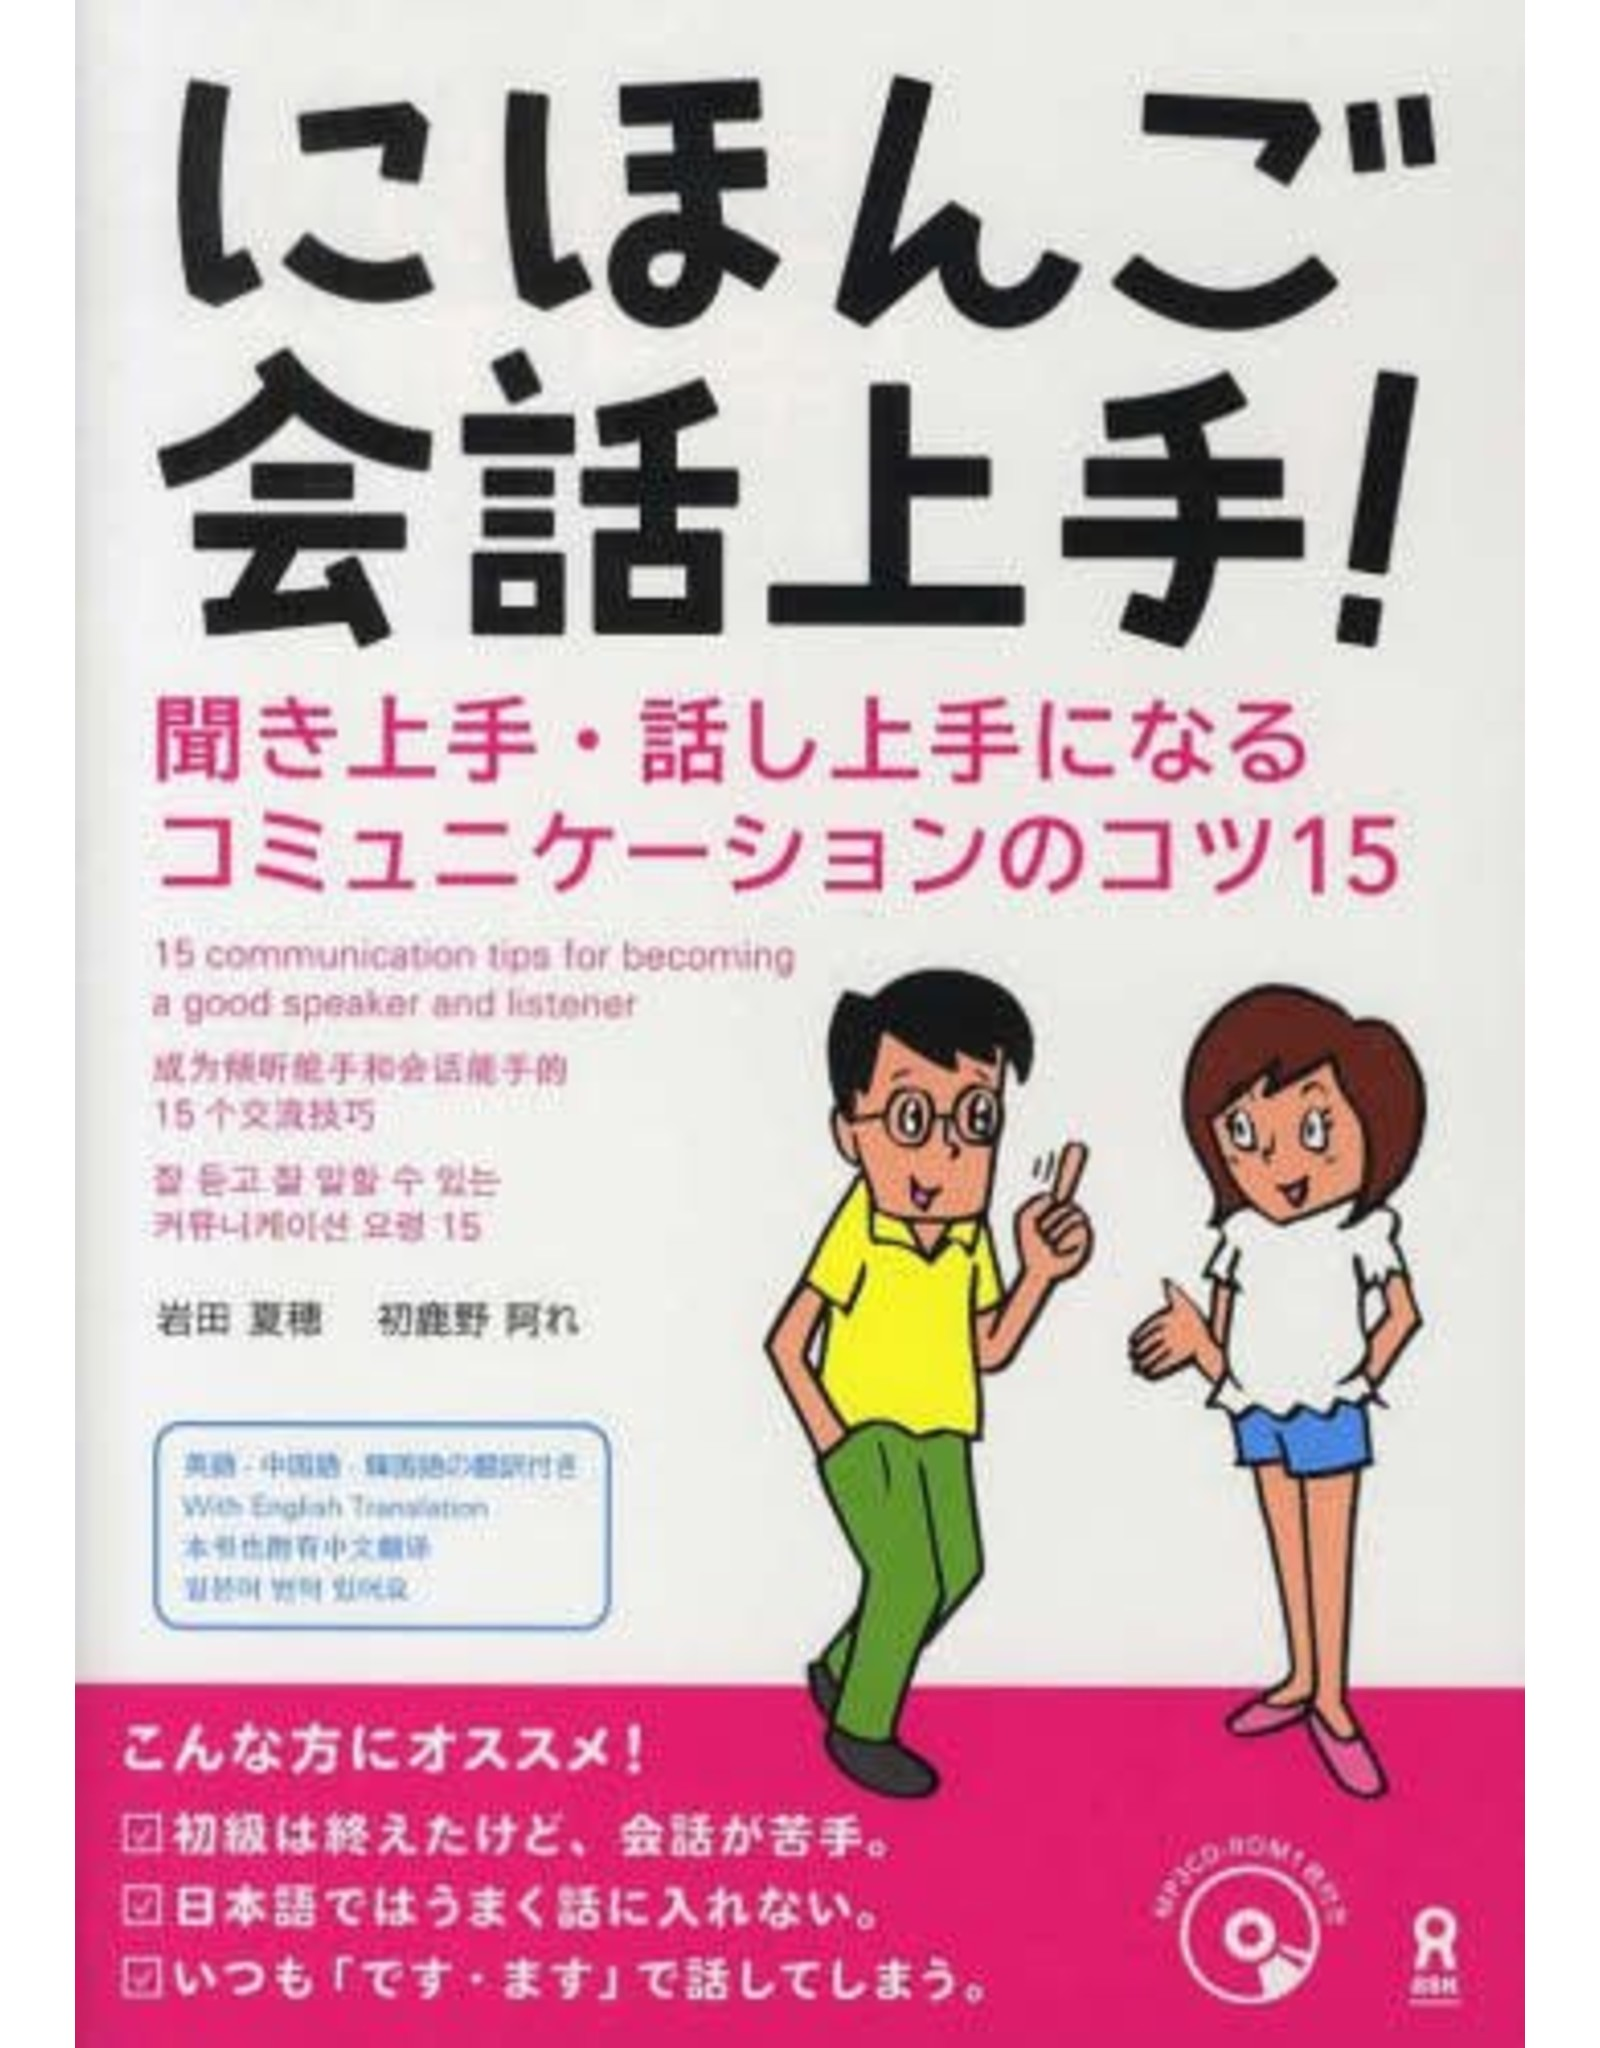 ASK NIHONGO KAIWA JOZU : 15 COMMUNICATION TIPS FOR BECOMING A GOOD SPEAKER & LISTENER